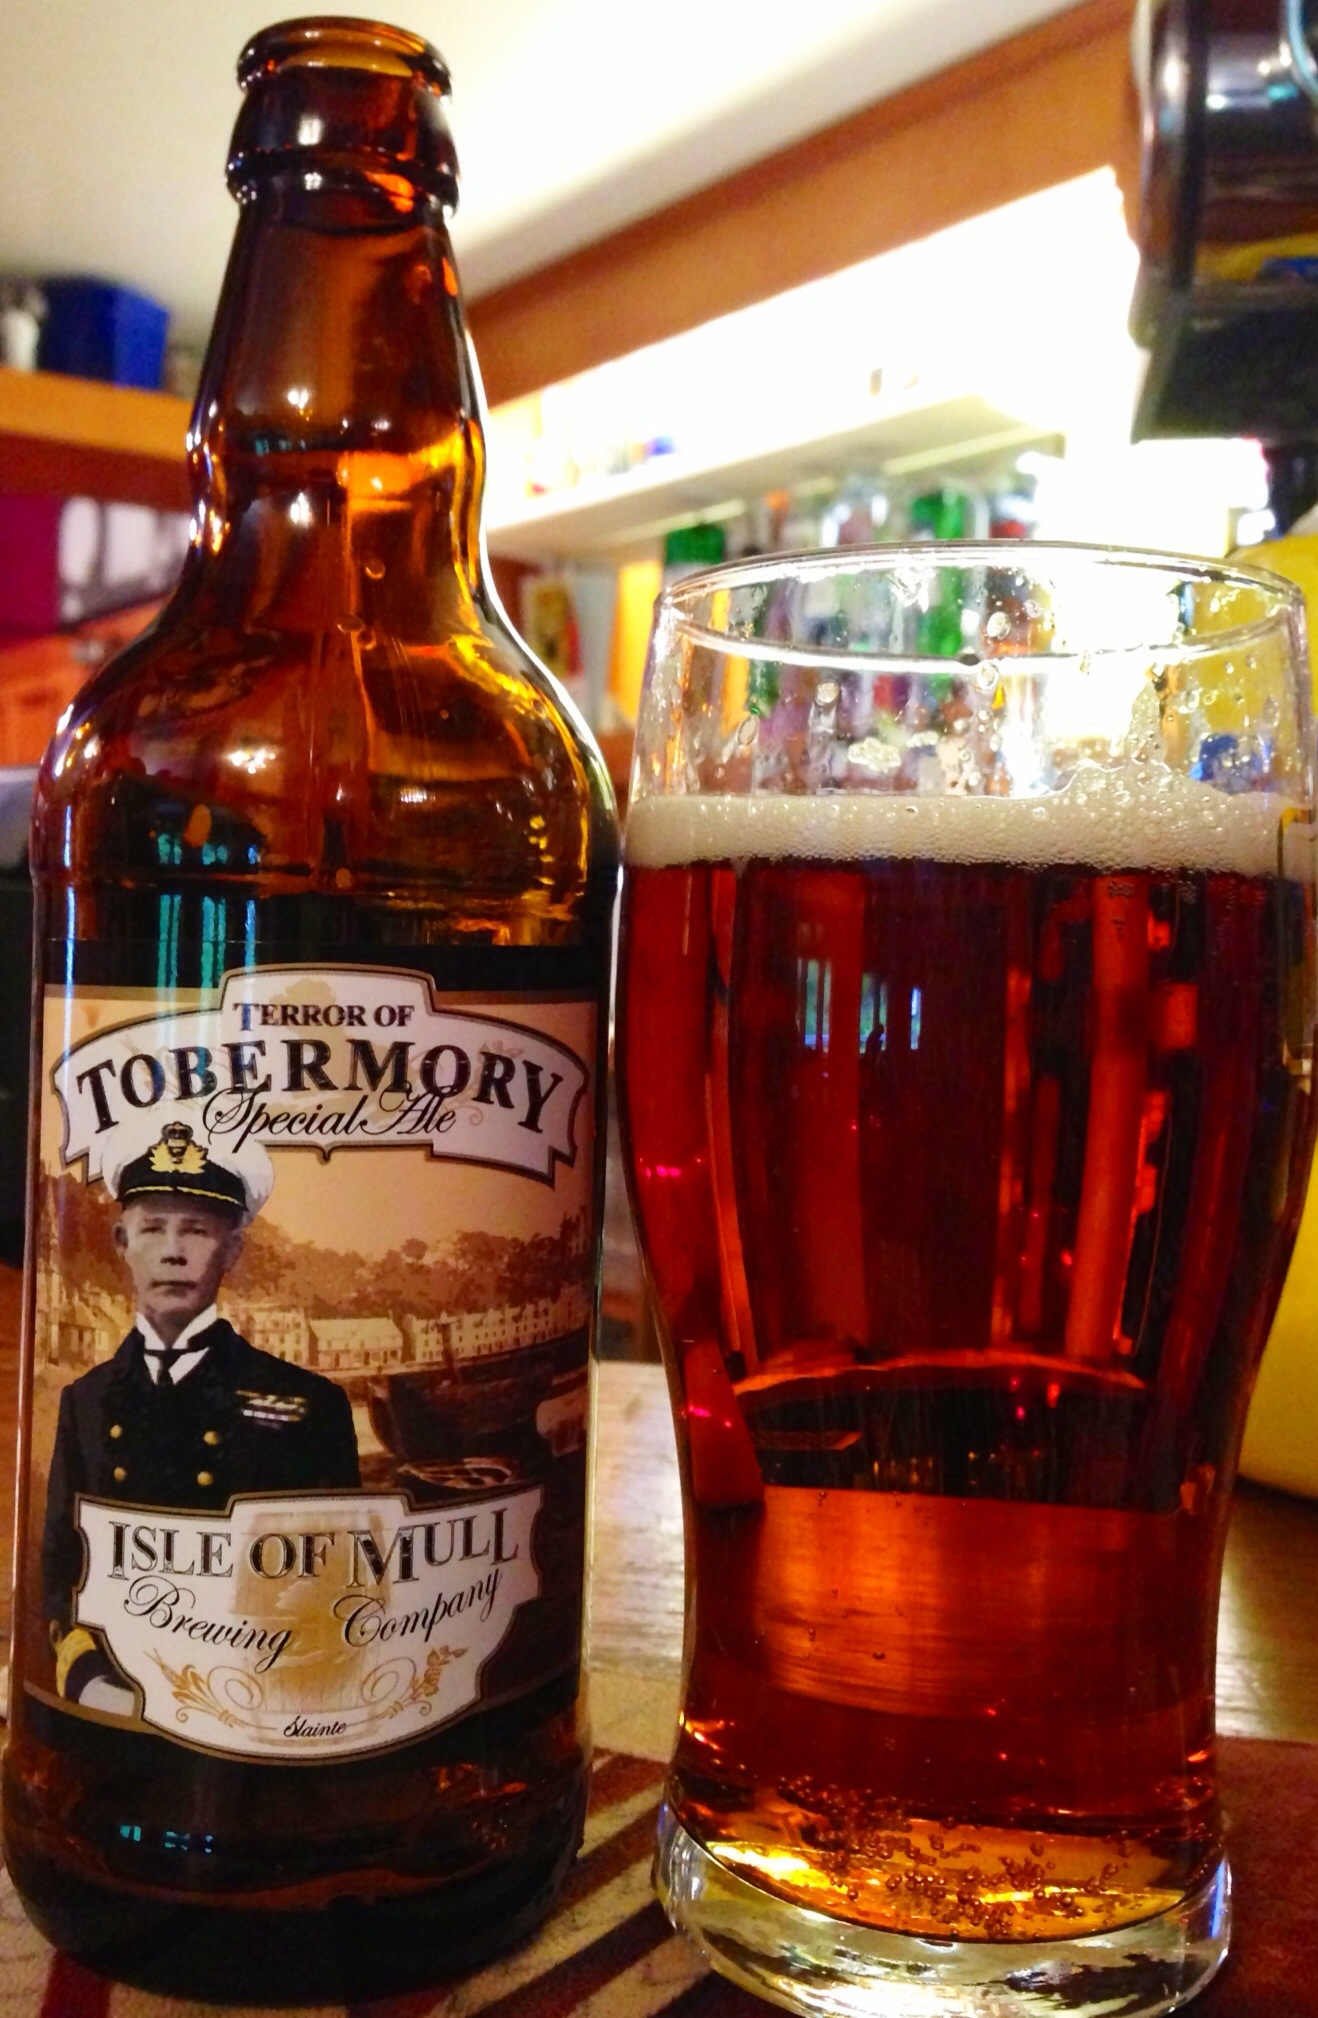 The Terror of Tobermory Special Ale, from the Isle of Mull